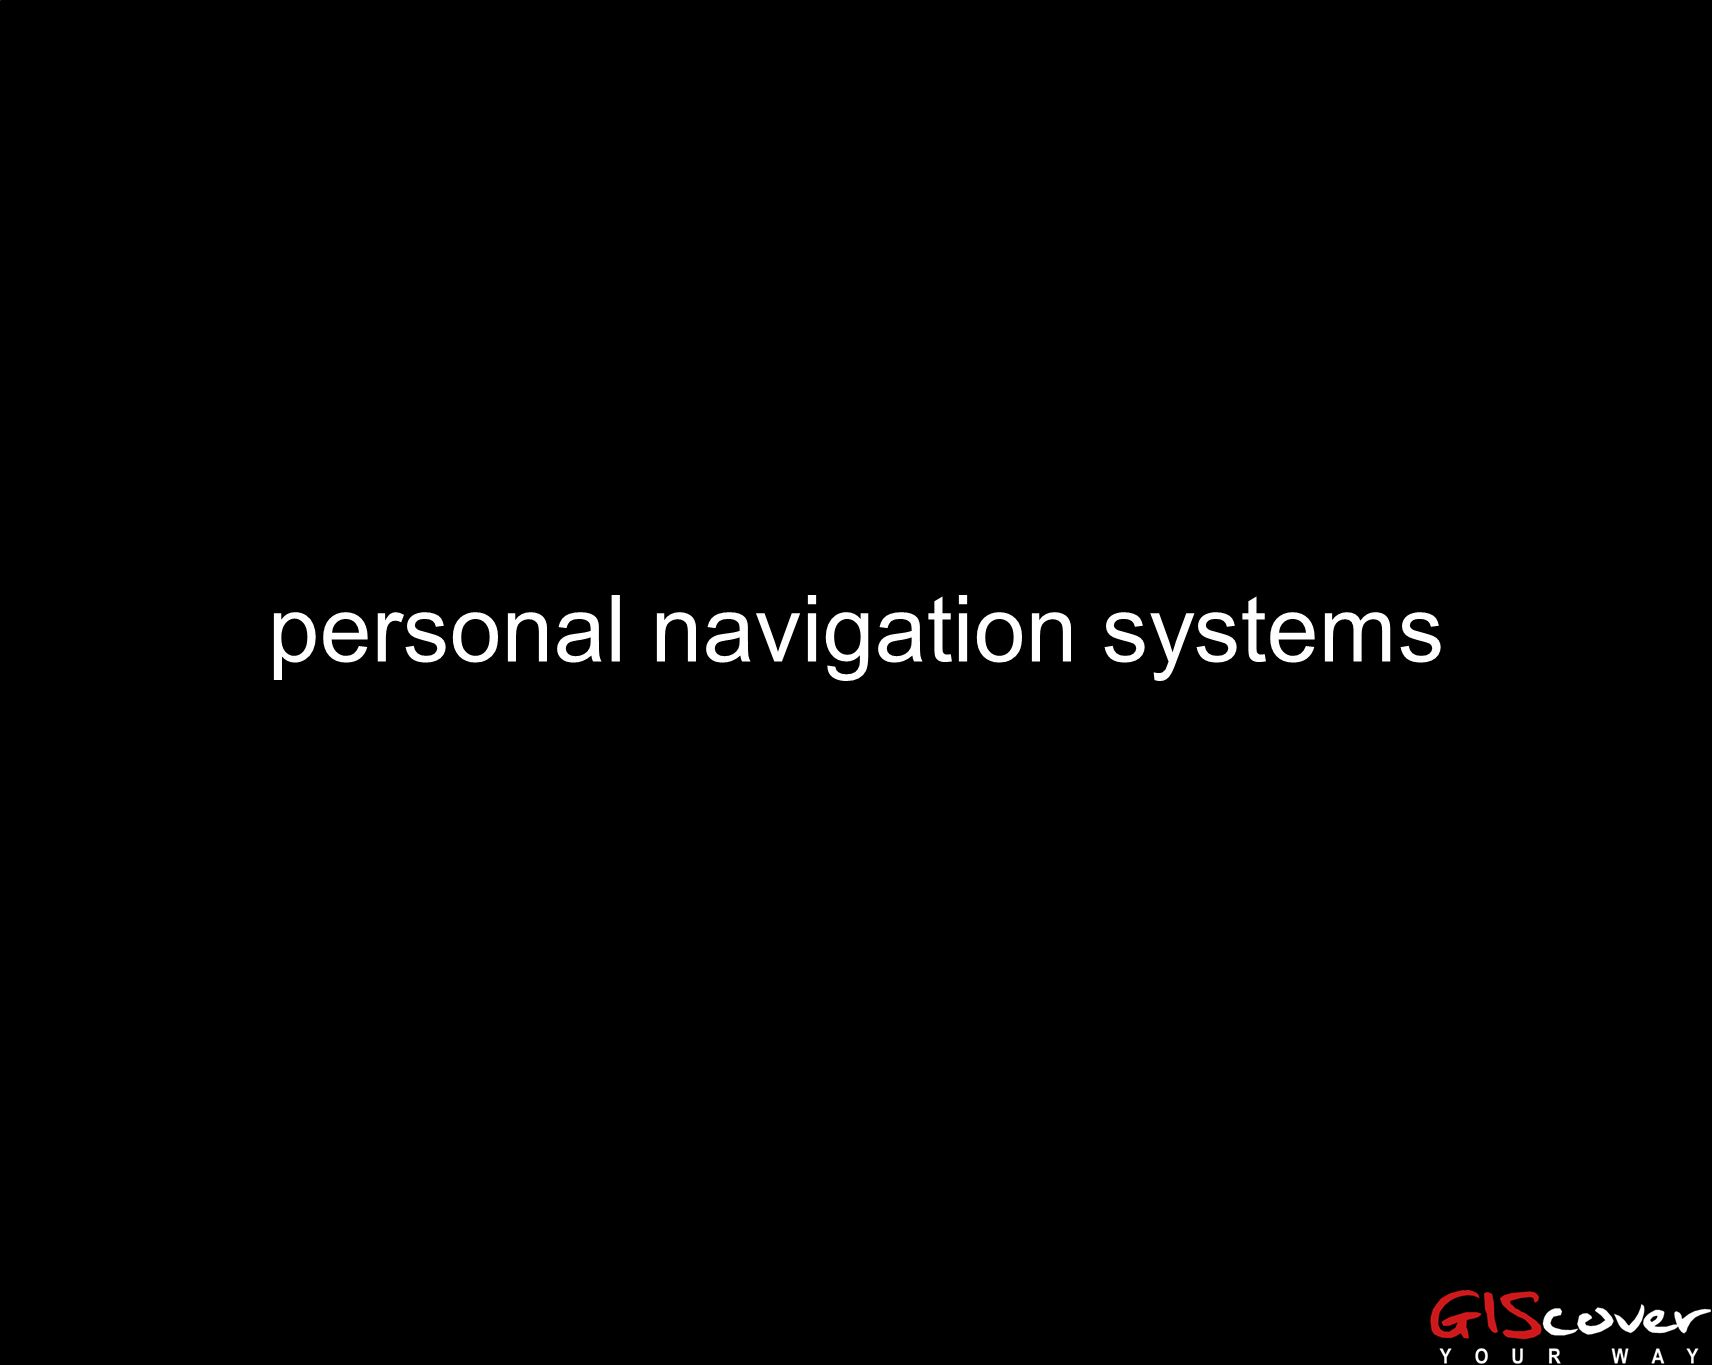 personal navigation systems